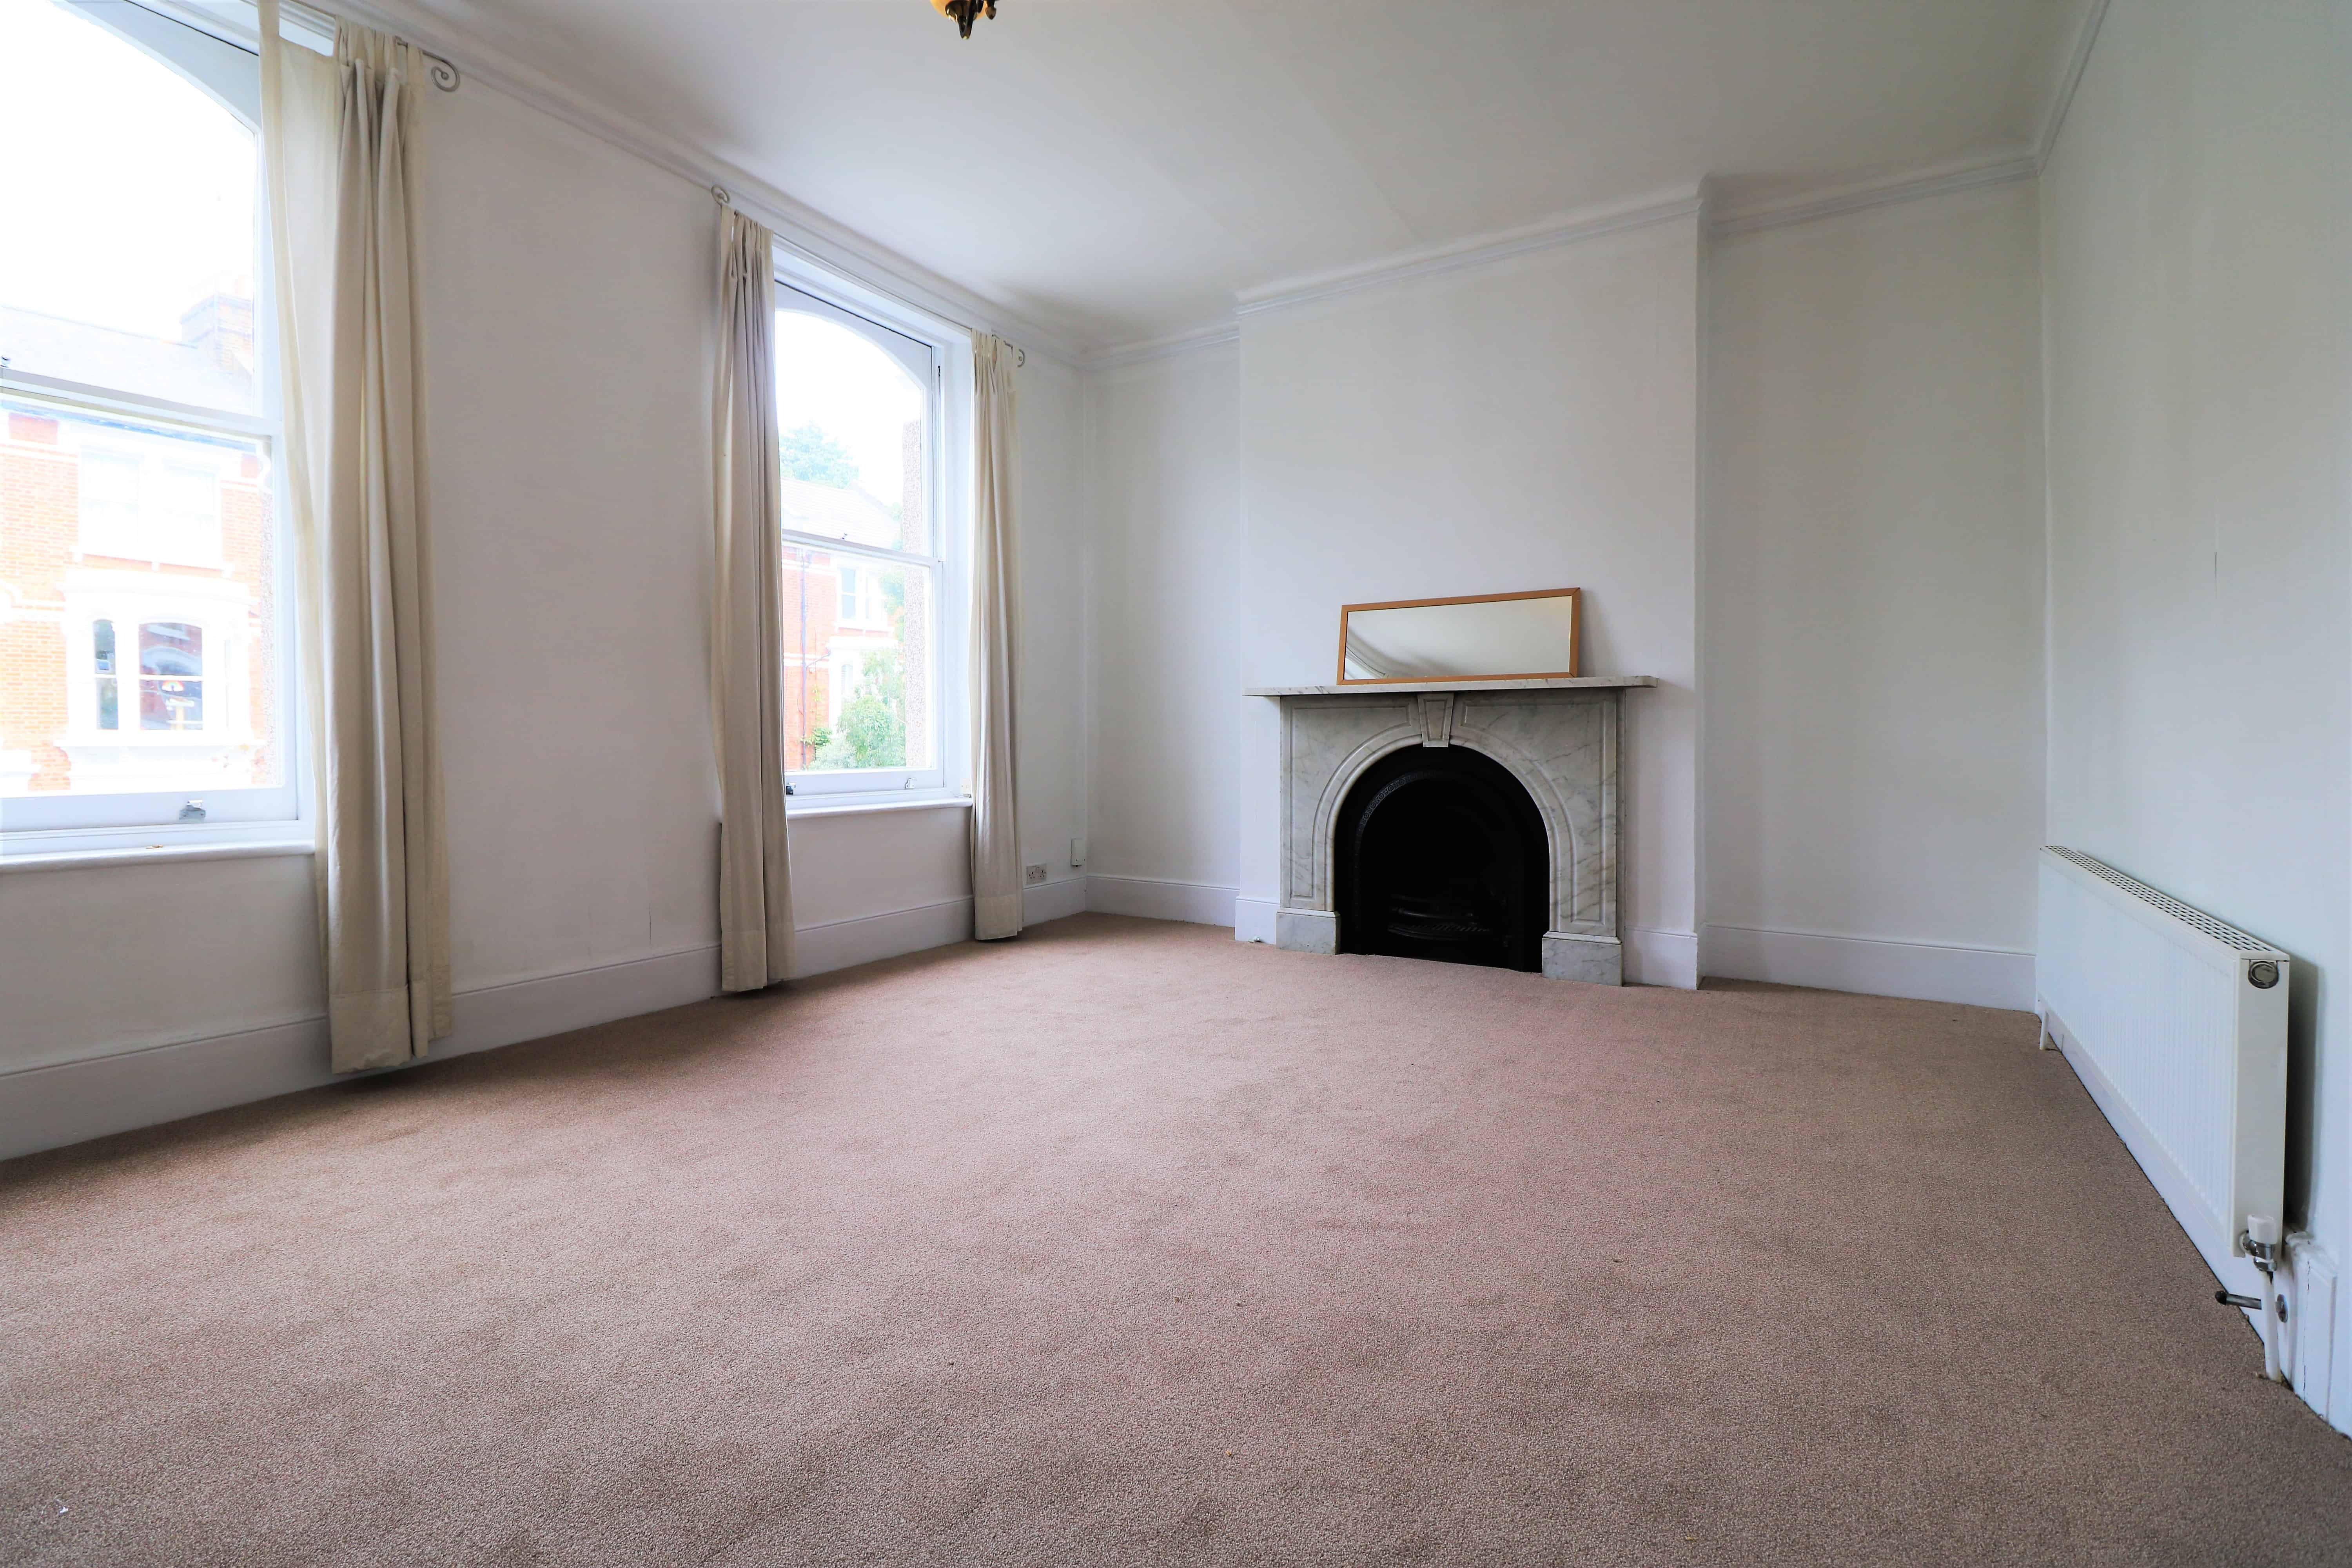 Repainted, first floor one double bedroom flat in Finsbury Park, N4. Quiet street close to station and park - Must be seen